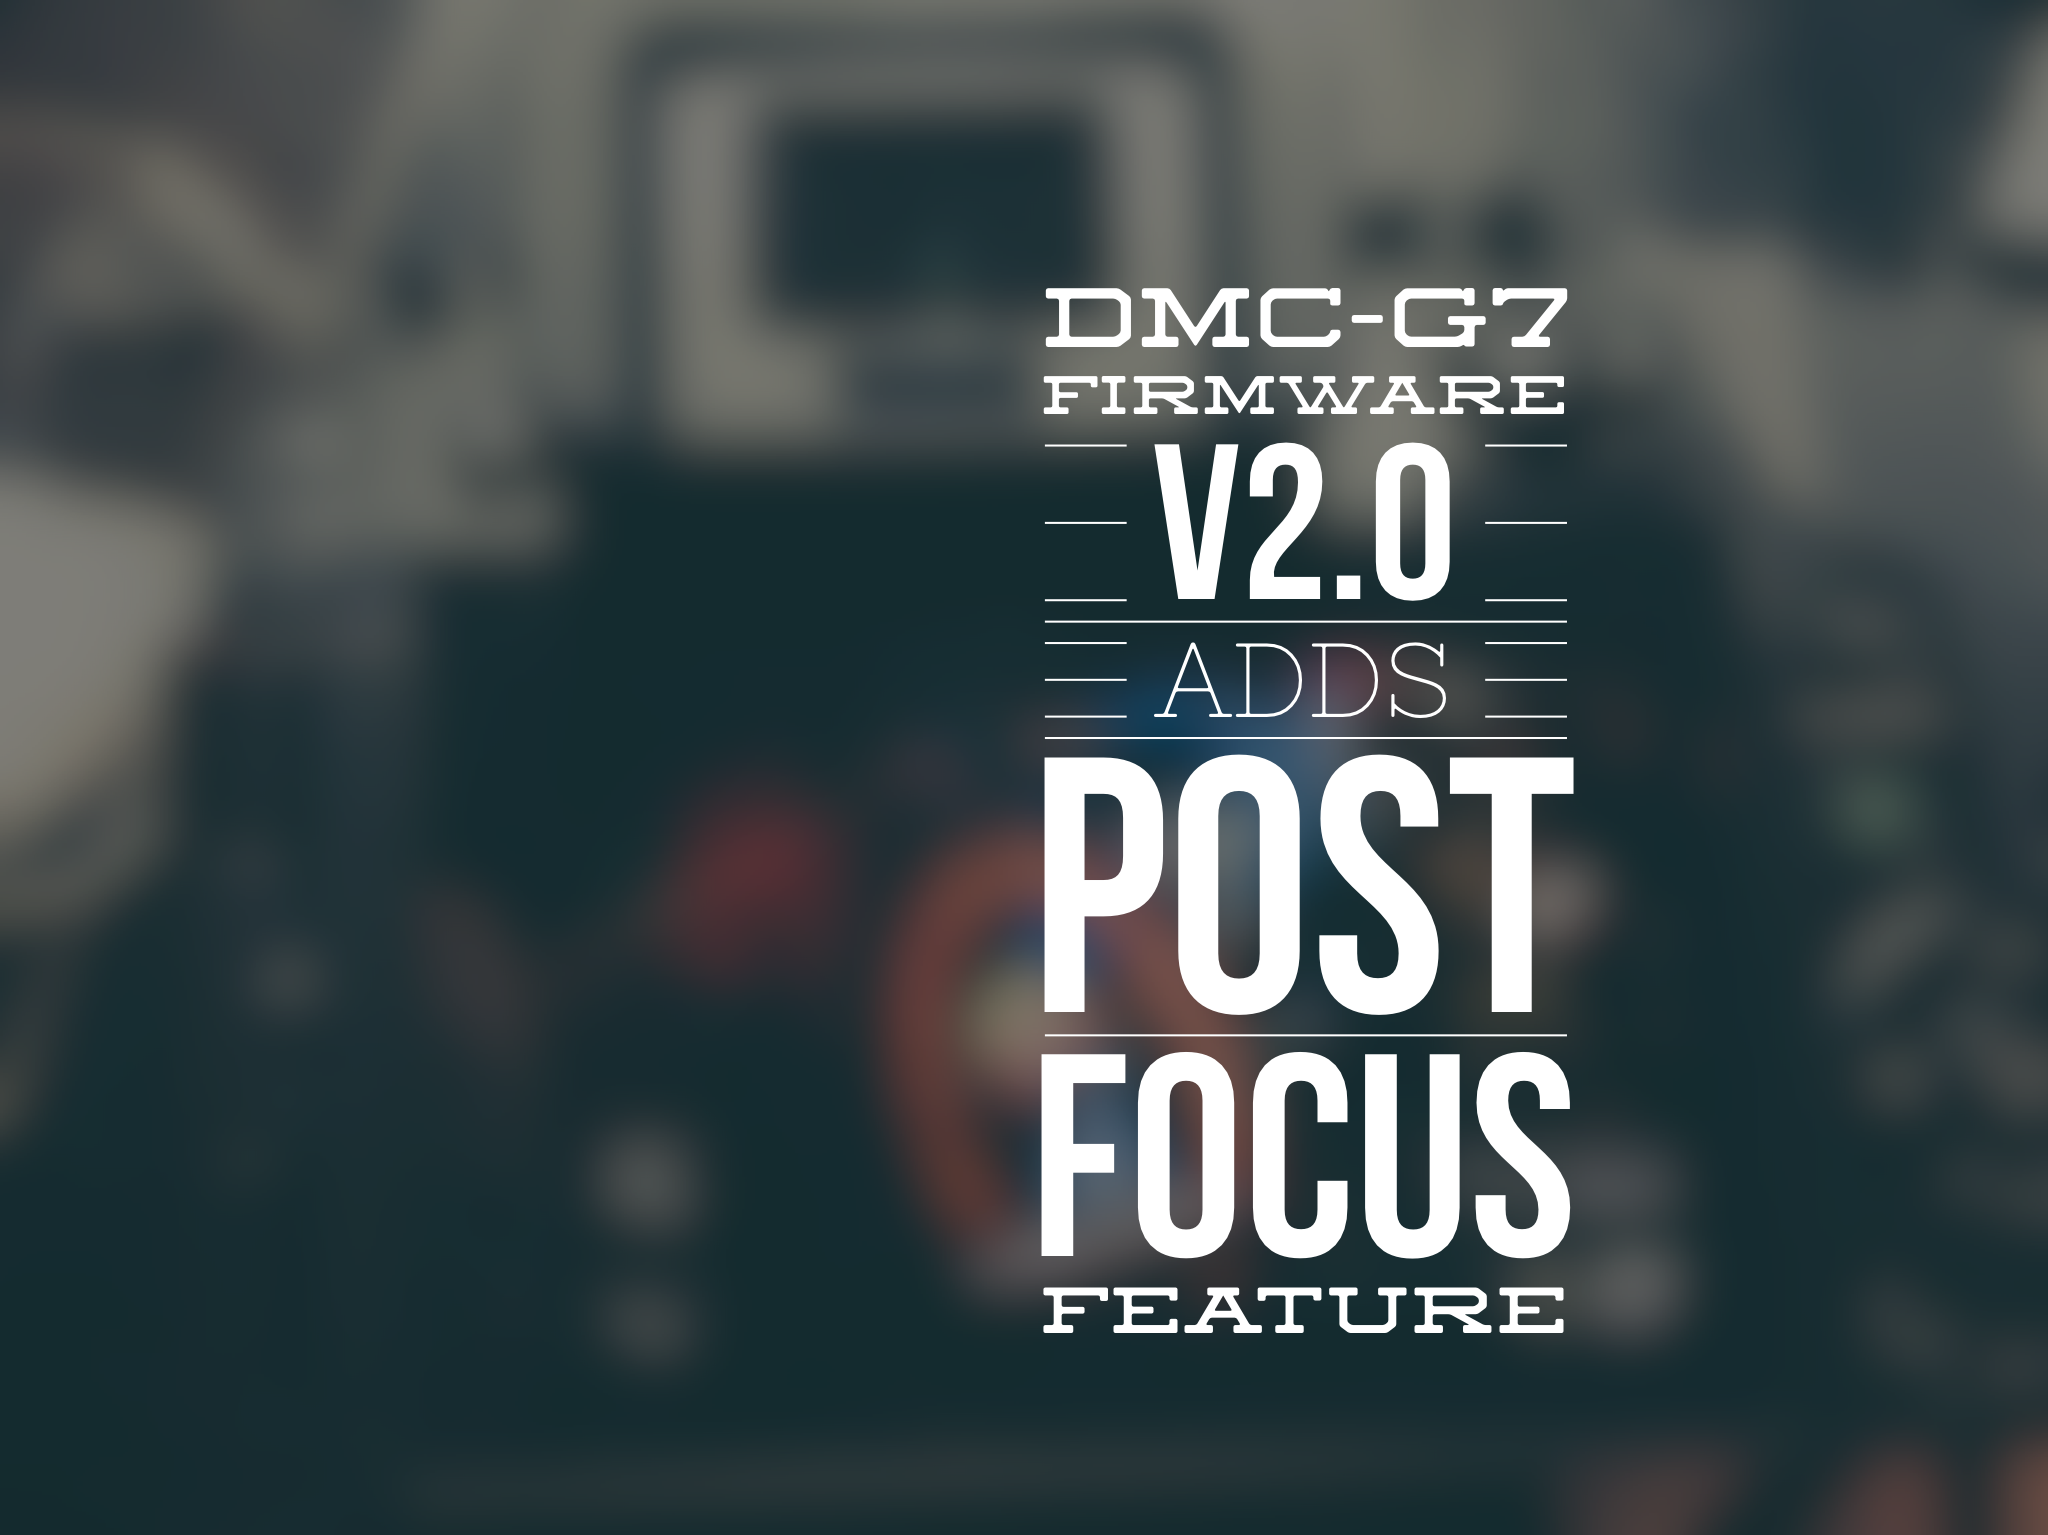 DMC-G7 Firmware v2.0 adds Post Focus feature 1